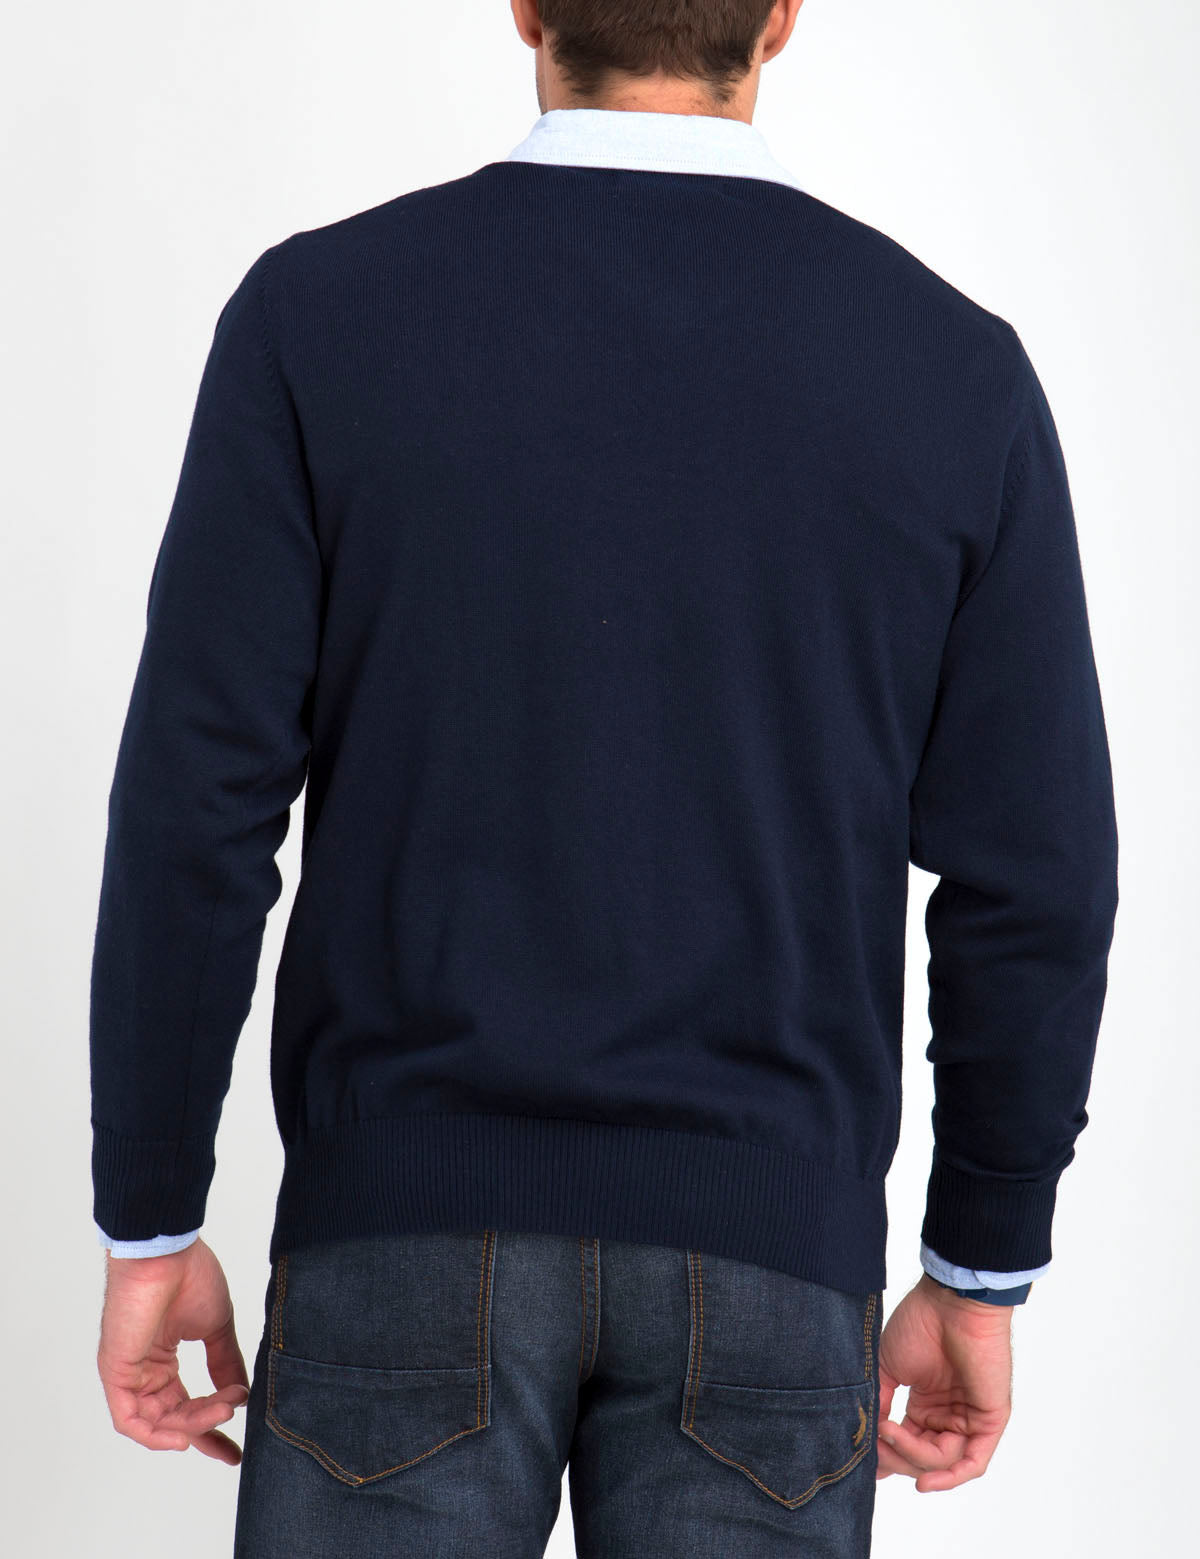 STRETCH V-NECK SWEATER - U.S. Polo Assn.